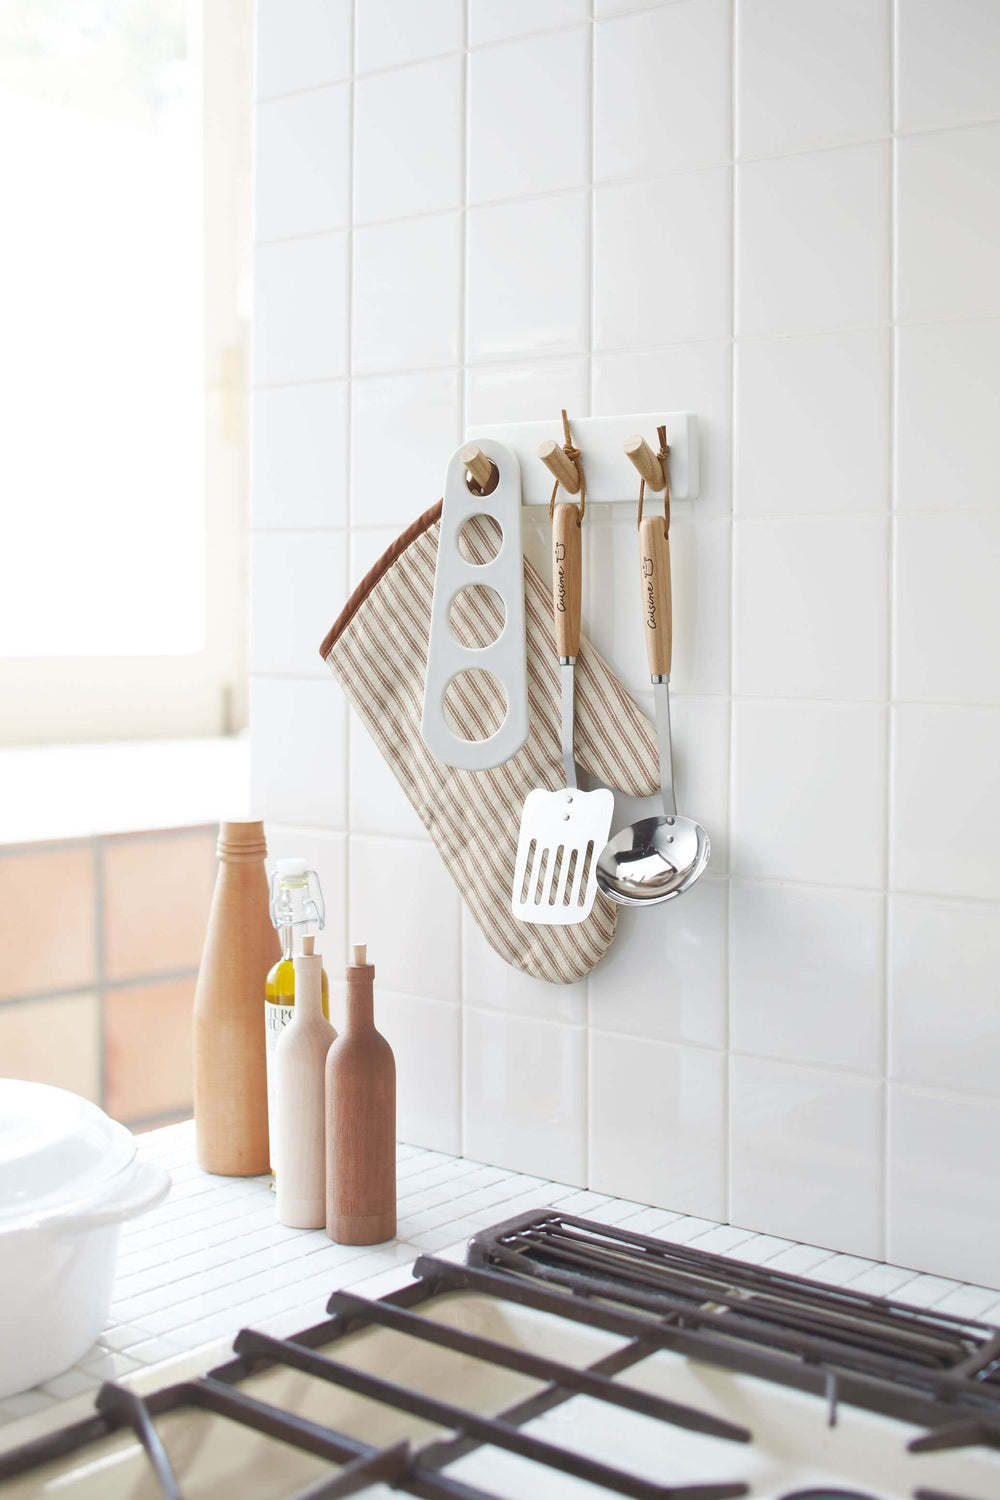 Yamazaki's magnetic peg rack holding cooking utensils above the sink.